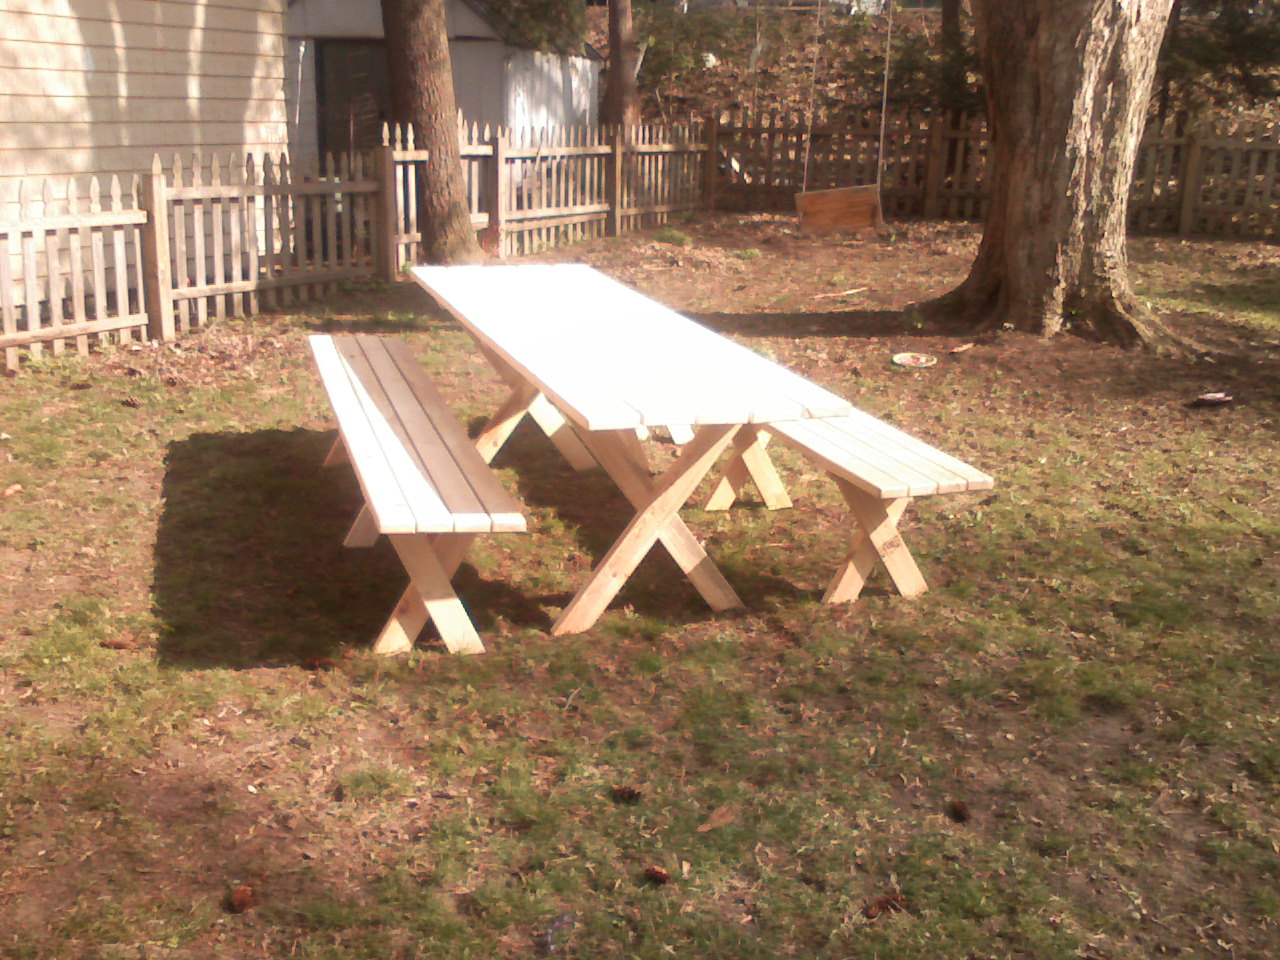 Picnic table with detached benches